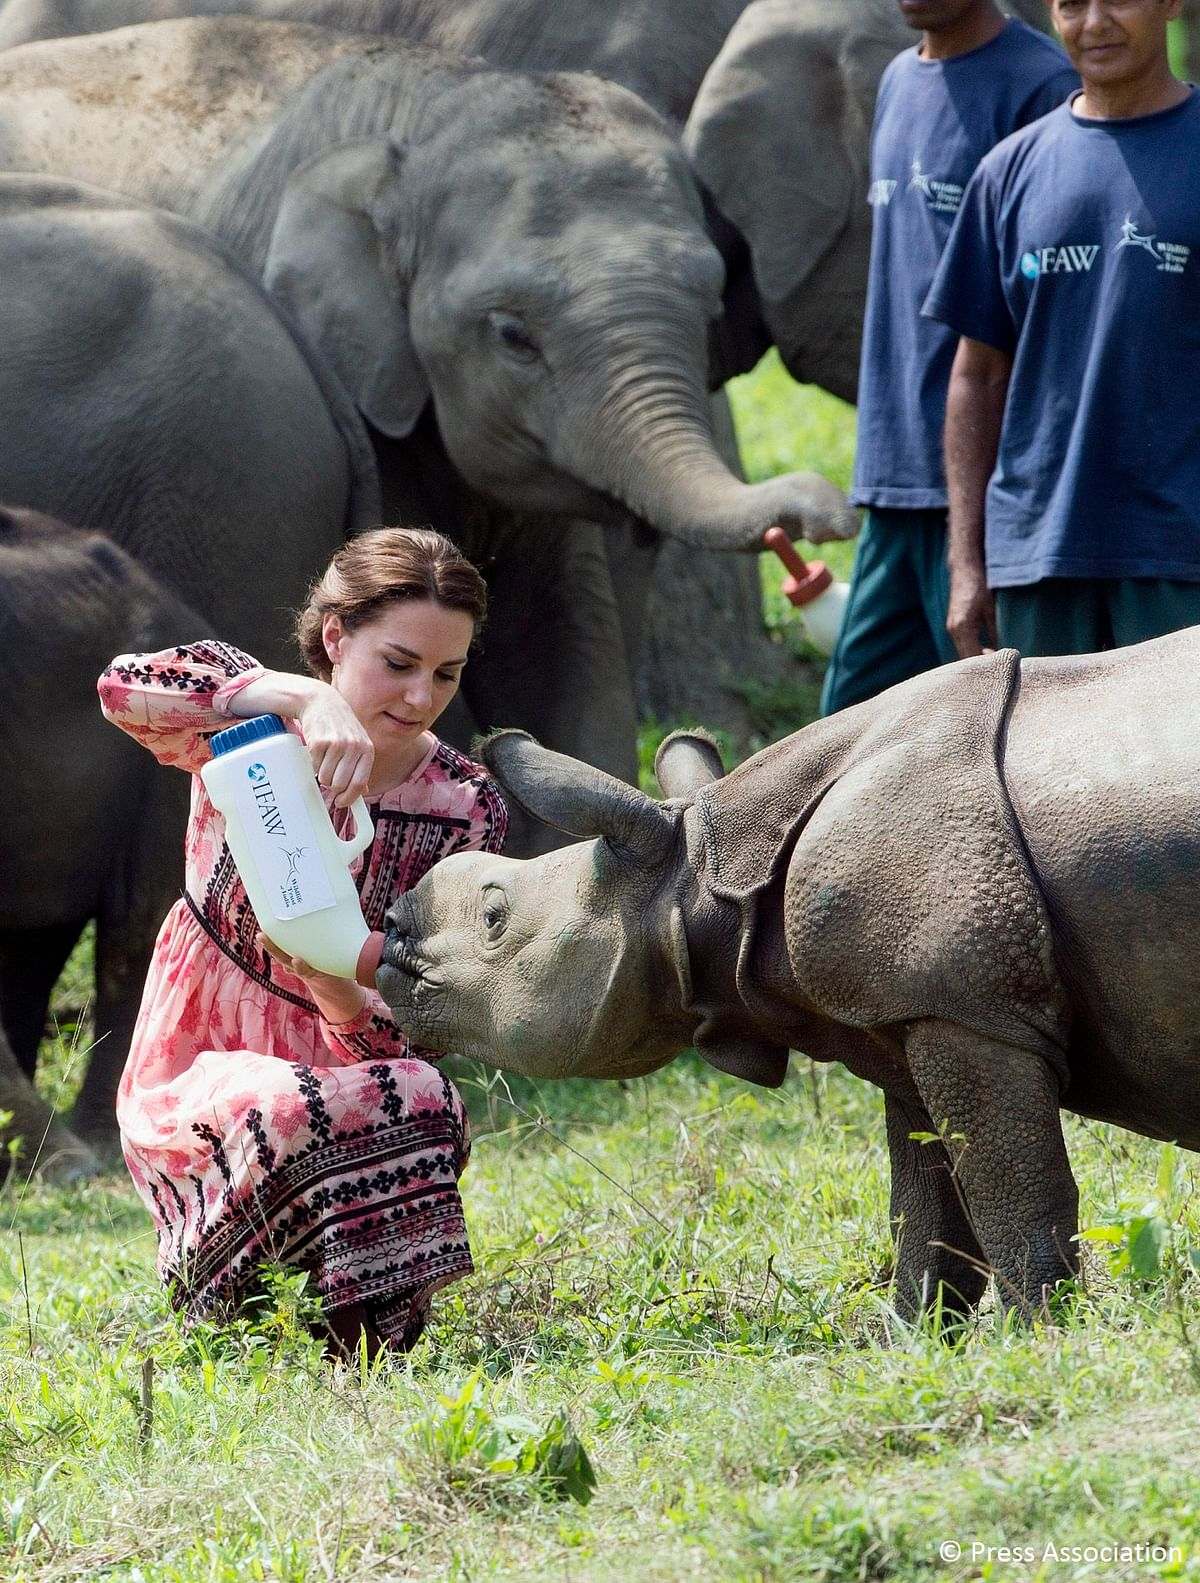 Prince William and Kate Middleton, the Duke and Duchess of Cambridge, visited the Kaziranga National Park in Assam on April 13, 2016